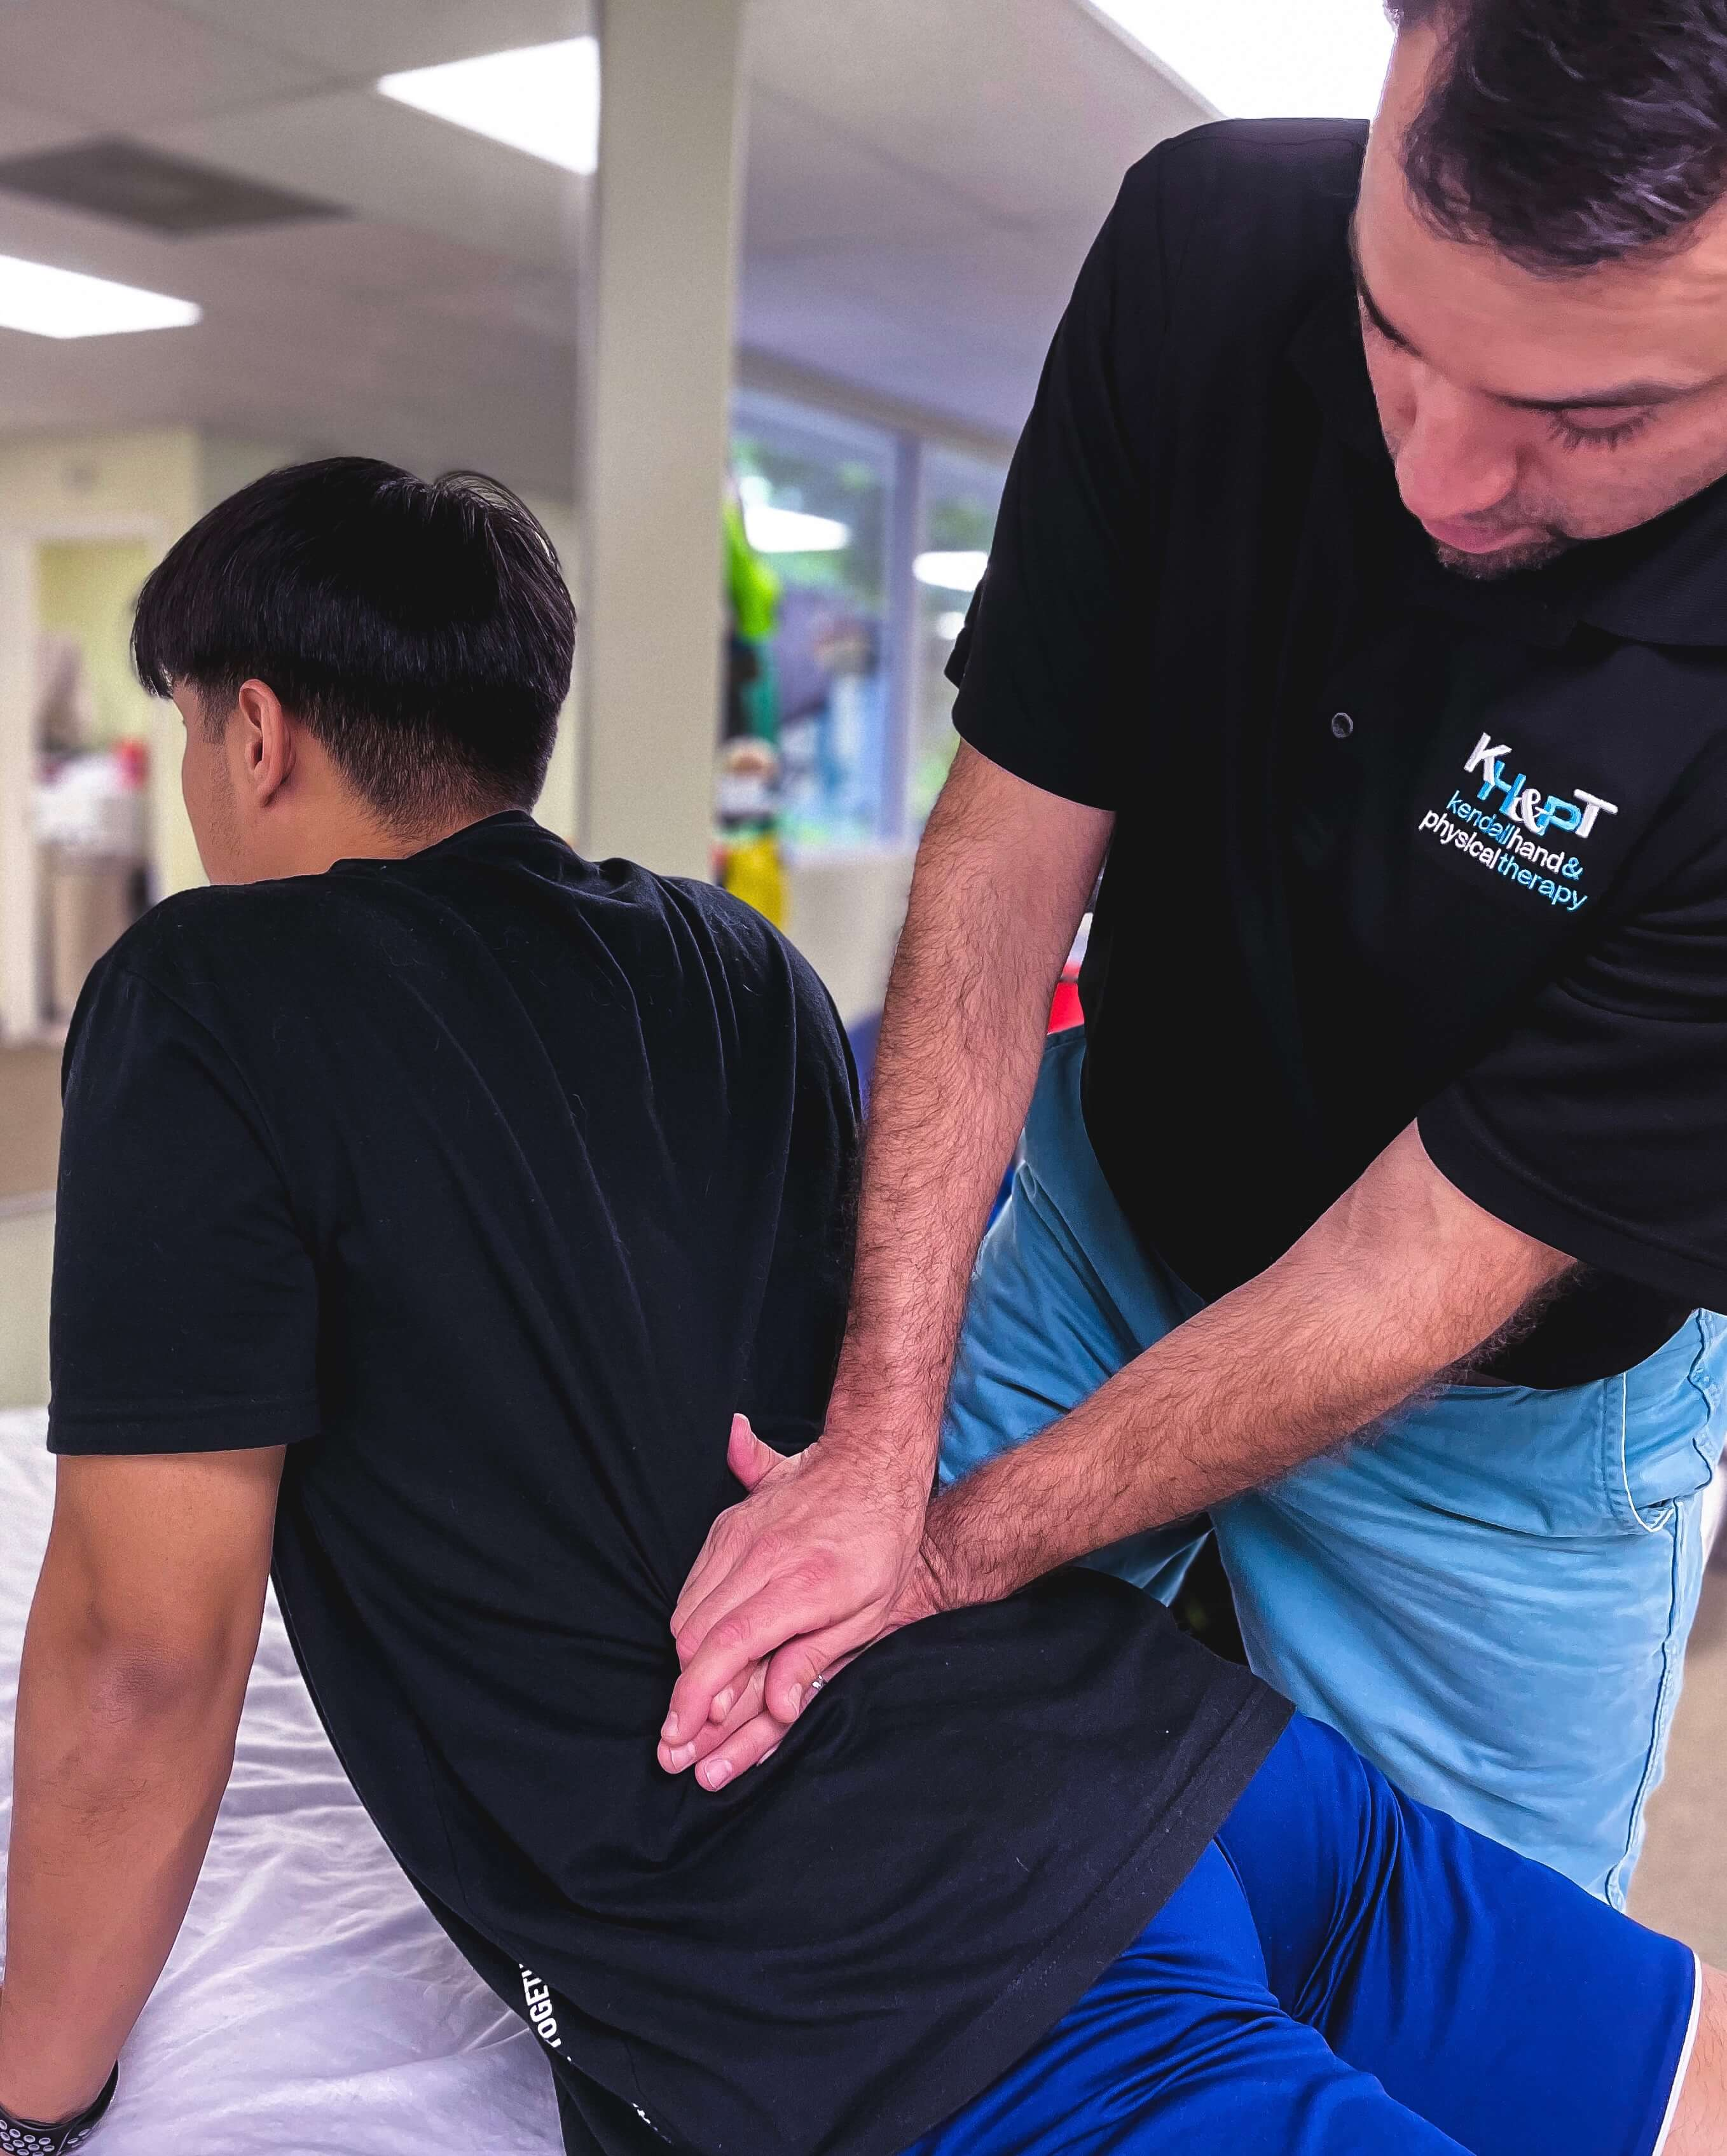 Therapist helps a man rehab his lower back